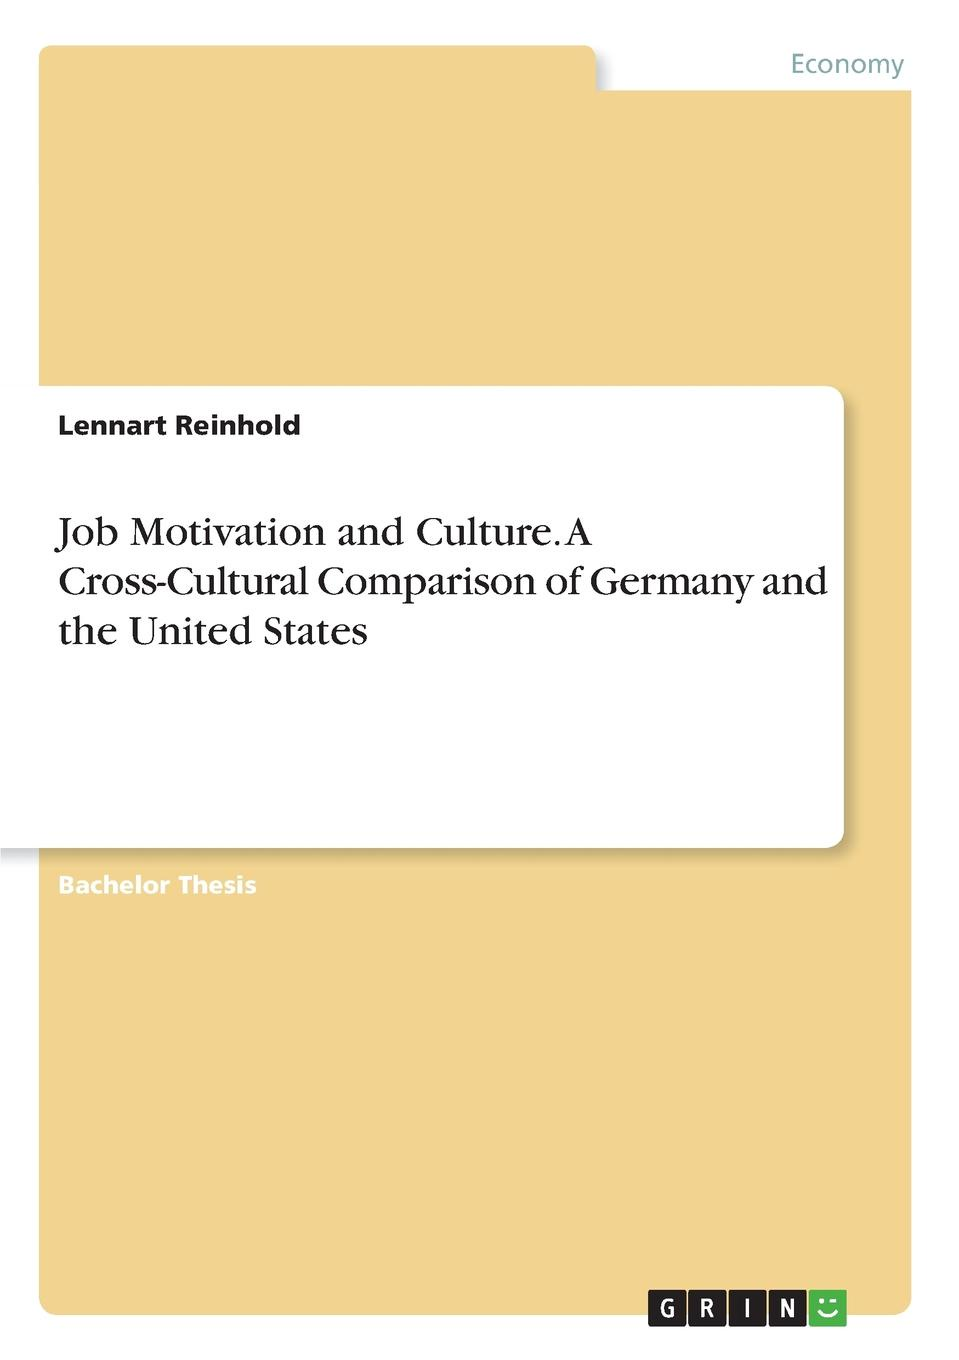 Lennart Reinhold Job Motivation and Culture. A Cross-Cultural Comparison of Germany and the United States